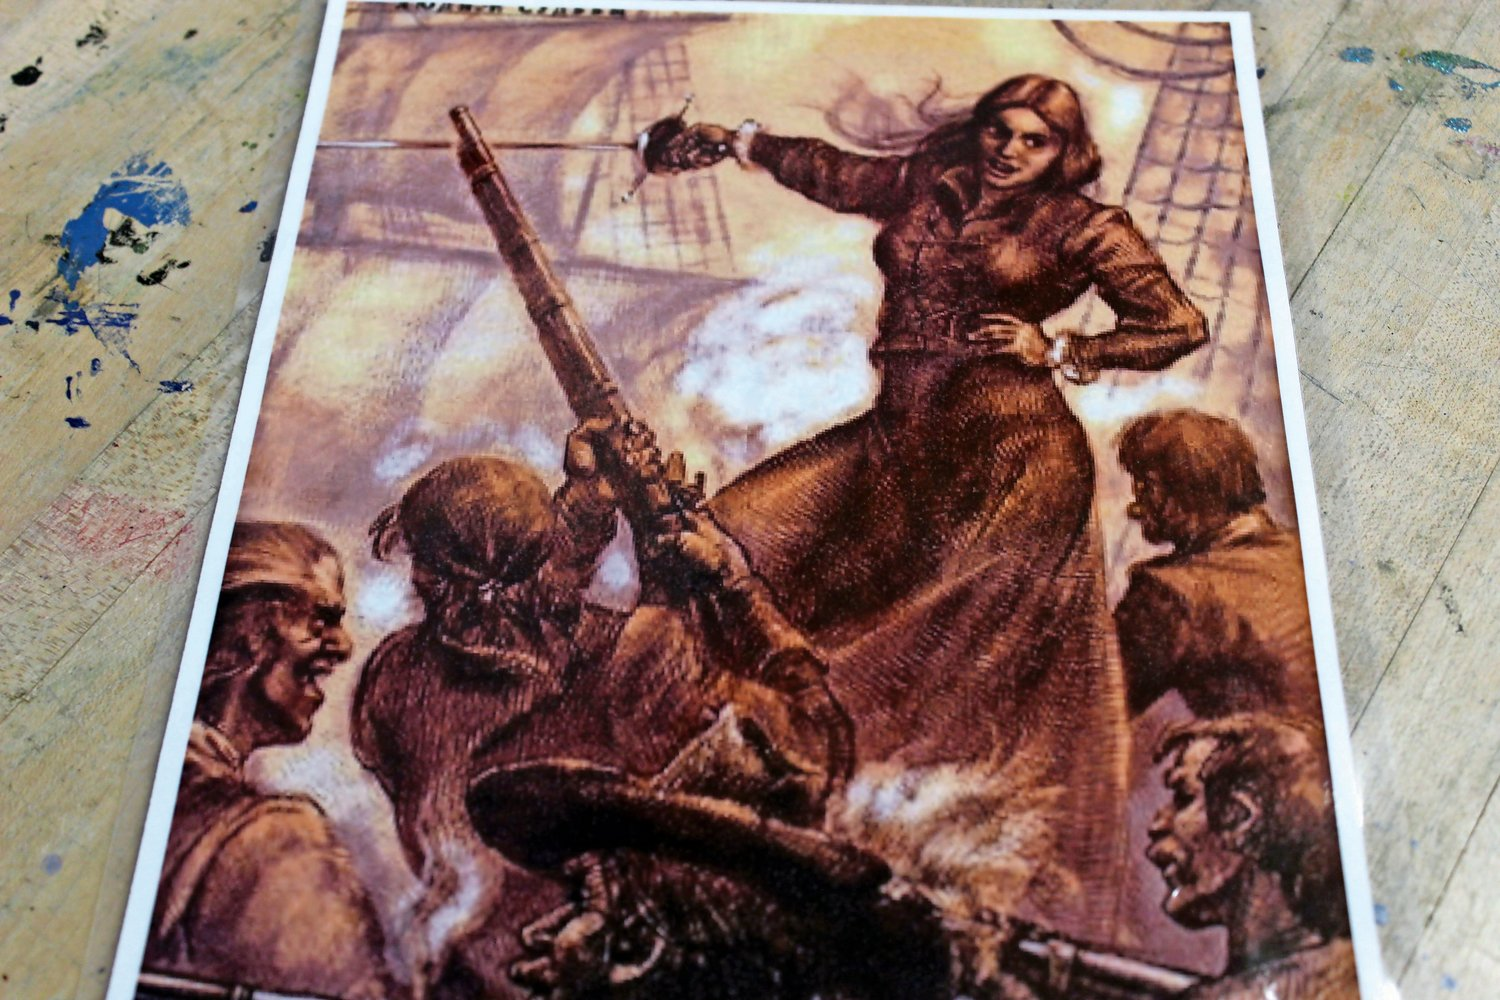 An artist's rendering of famous Irish pirate Grace O'Malley, pictured directing her crew with a flick of her sword.